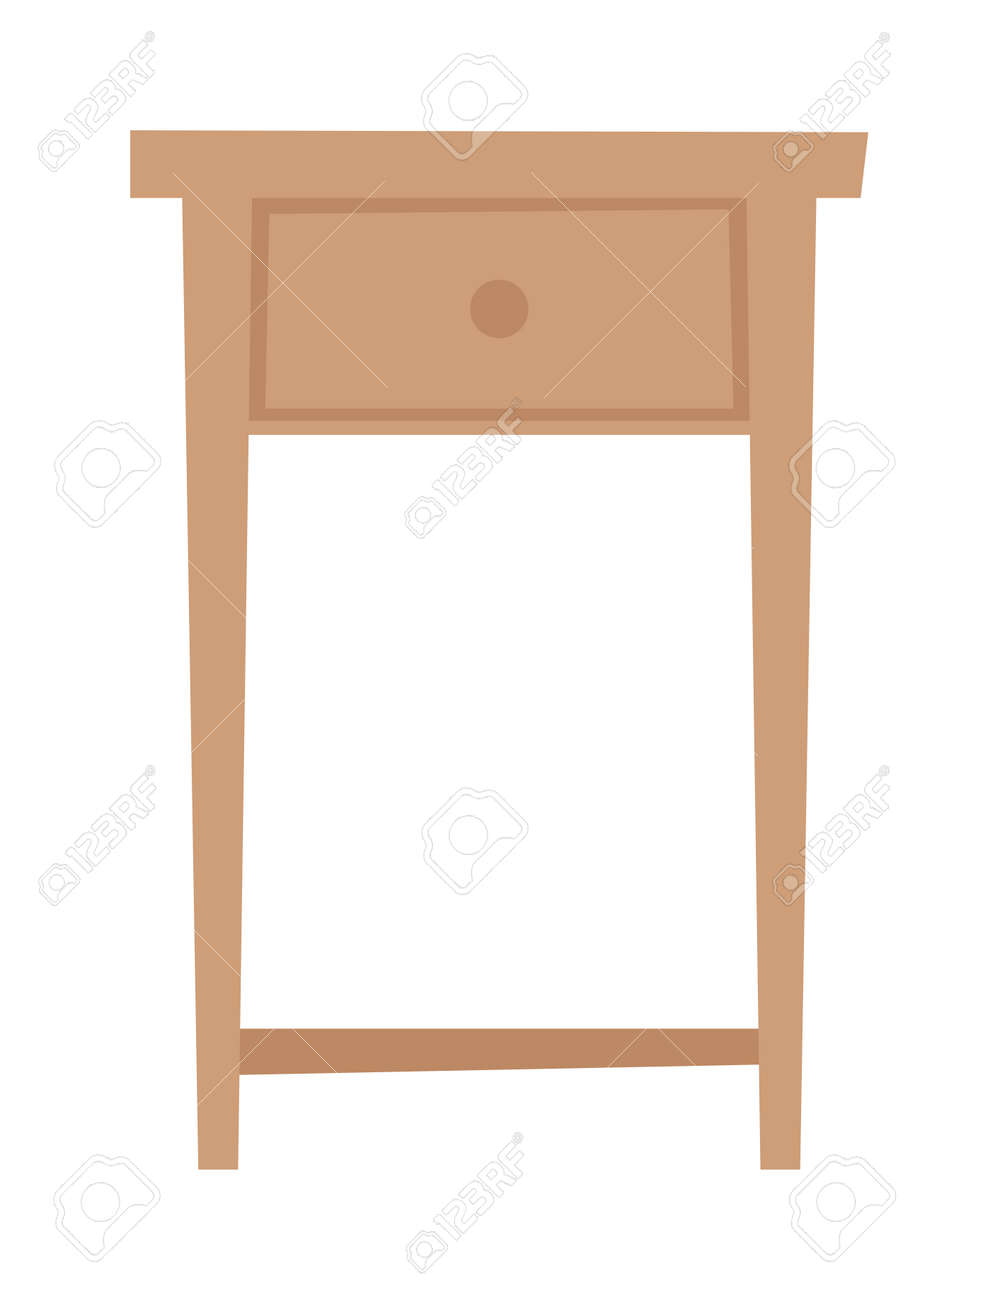 Bedside Nightstand And Wooden Nightstand Classic Contemporary Royalty Free Cliparts Vectors And Stock Illustration Image 56524209